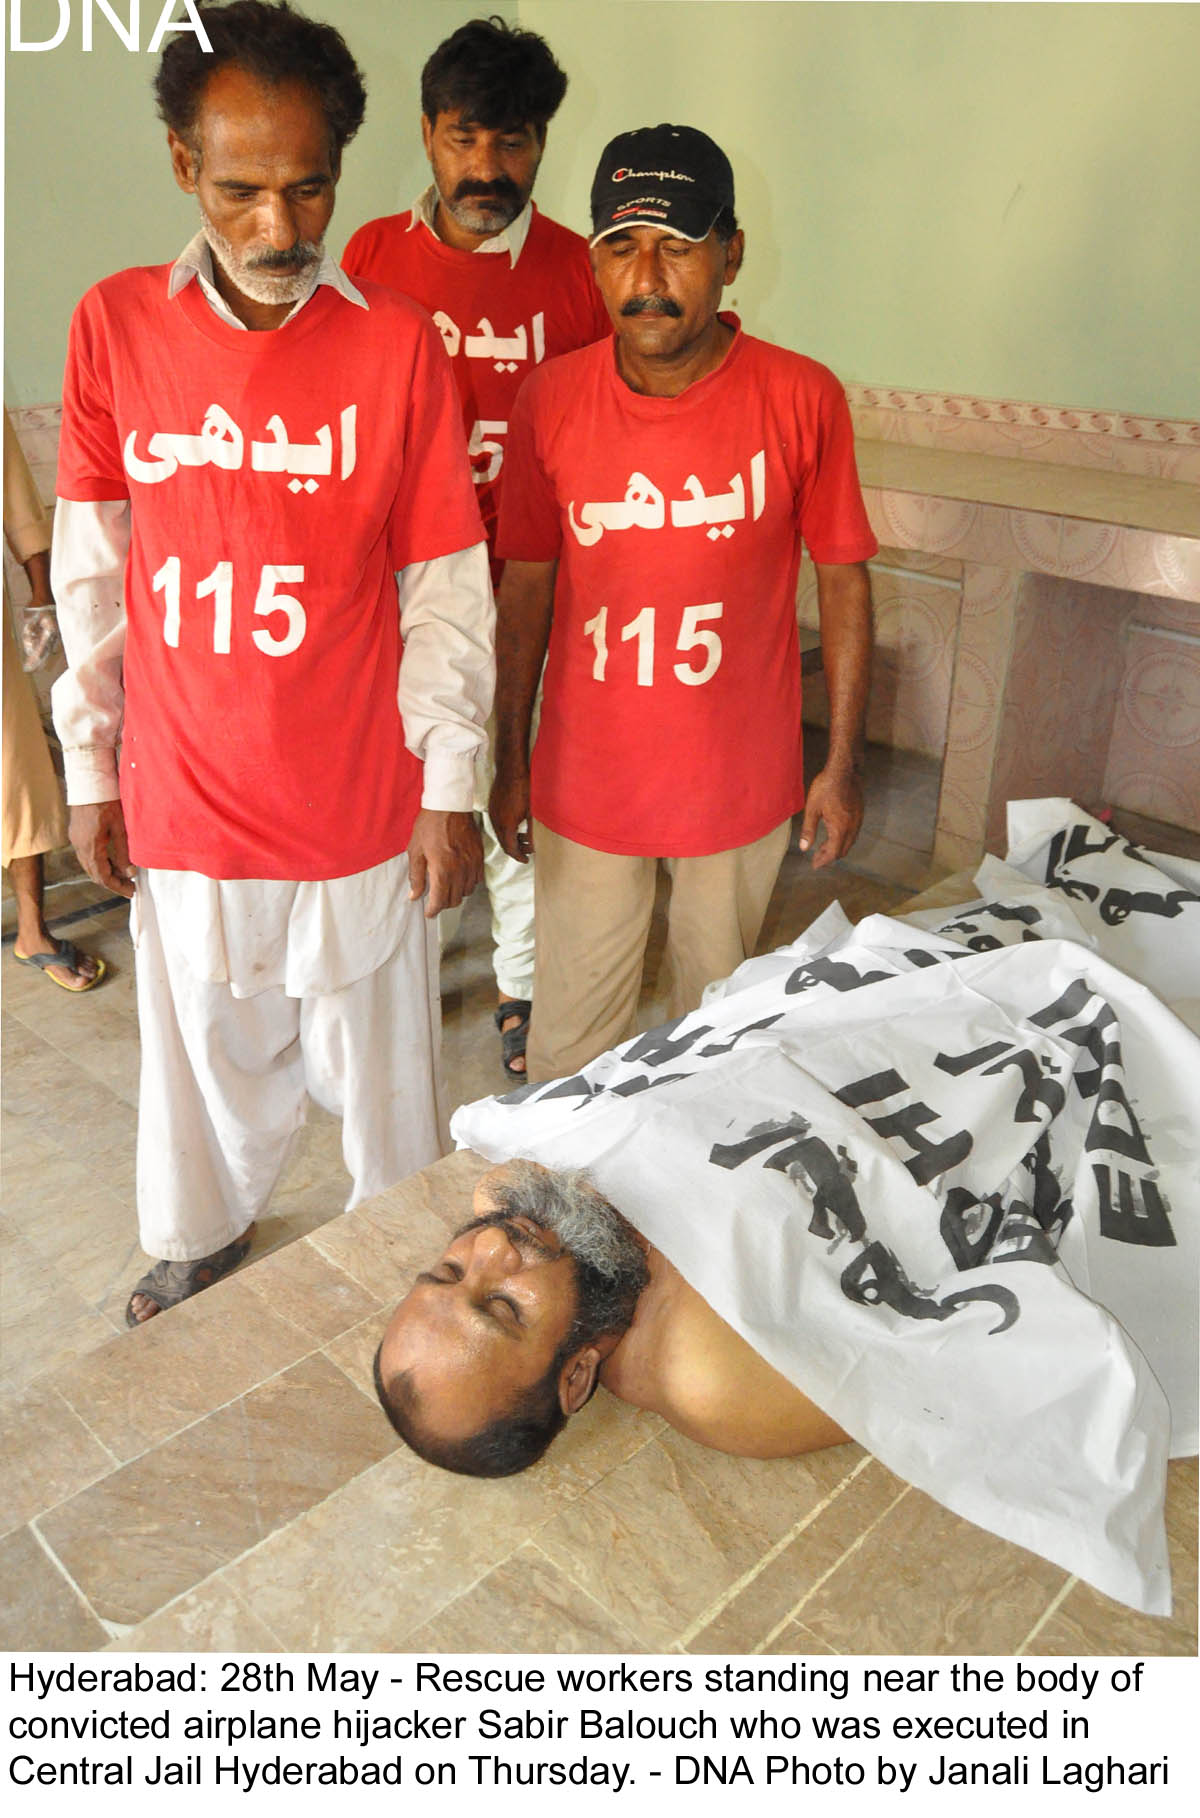 Hyderabad: 28th May - Rescue workers standing near the body of  convicted airplane hijacker Sabir Balouch who was executed in  Central Jail Hyderabad on Thursday. - DNA Photo by Janali Laghari